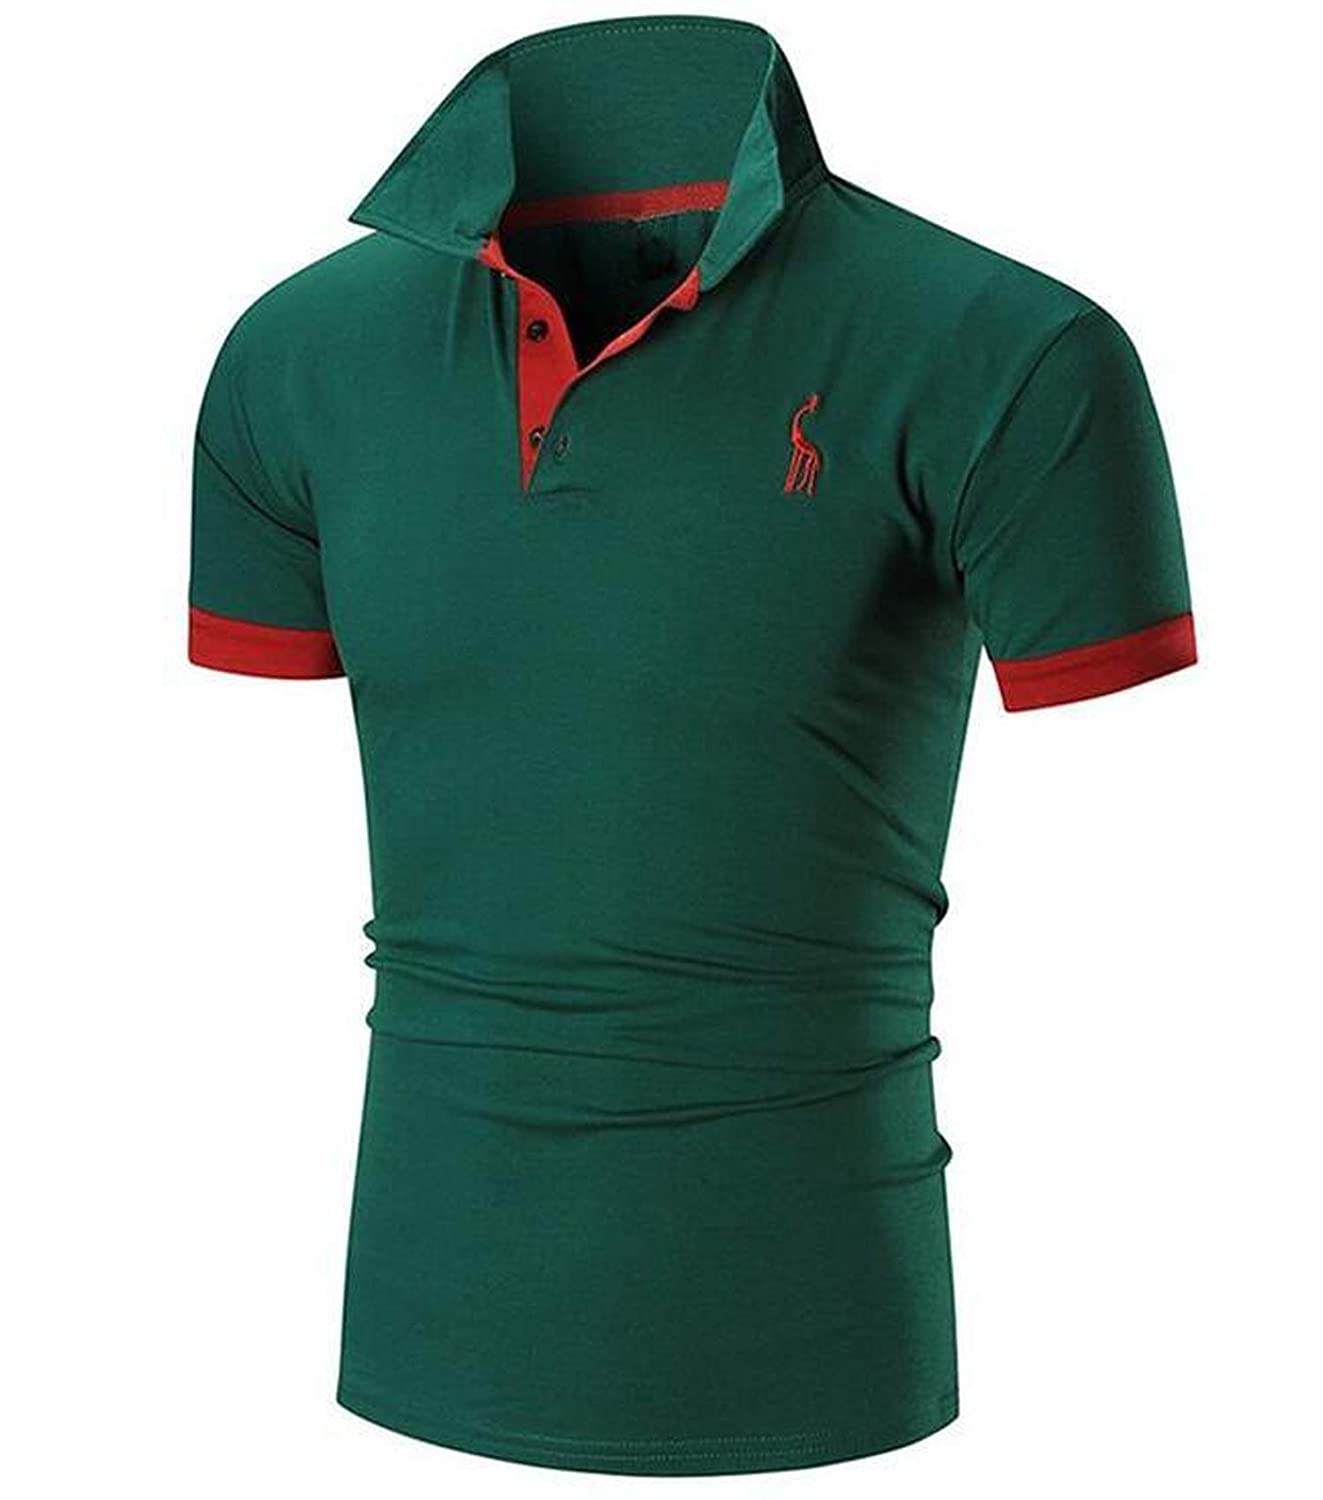 EspTmall Mens Polo Shirt Male Short Sleeve Casual Slim Solid Color Deer Embroidery Polos Men 5XL